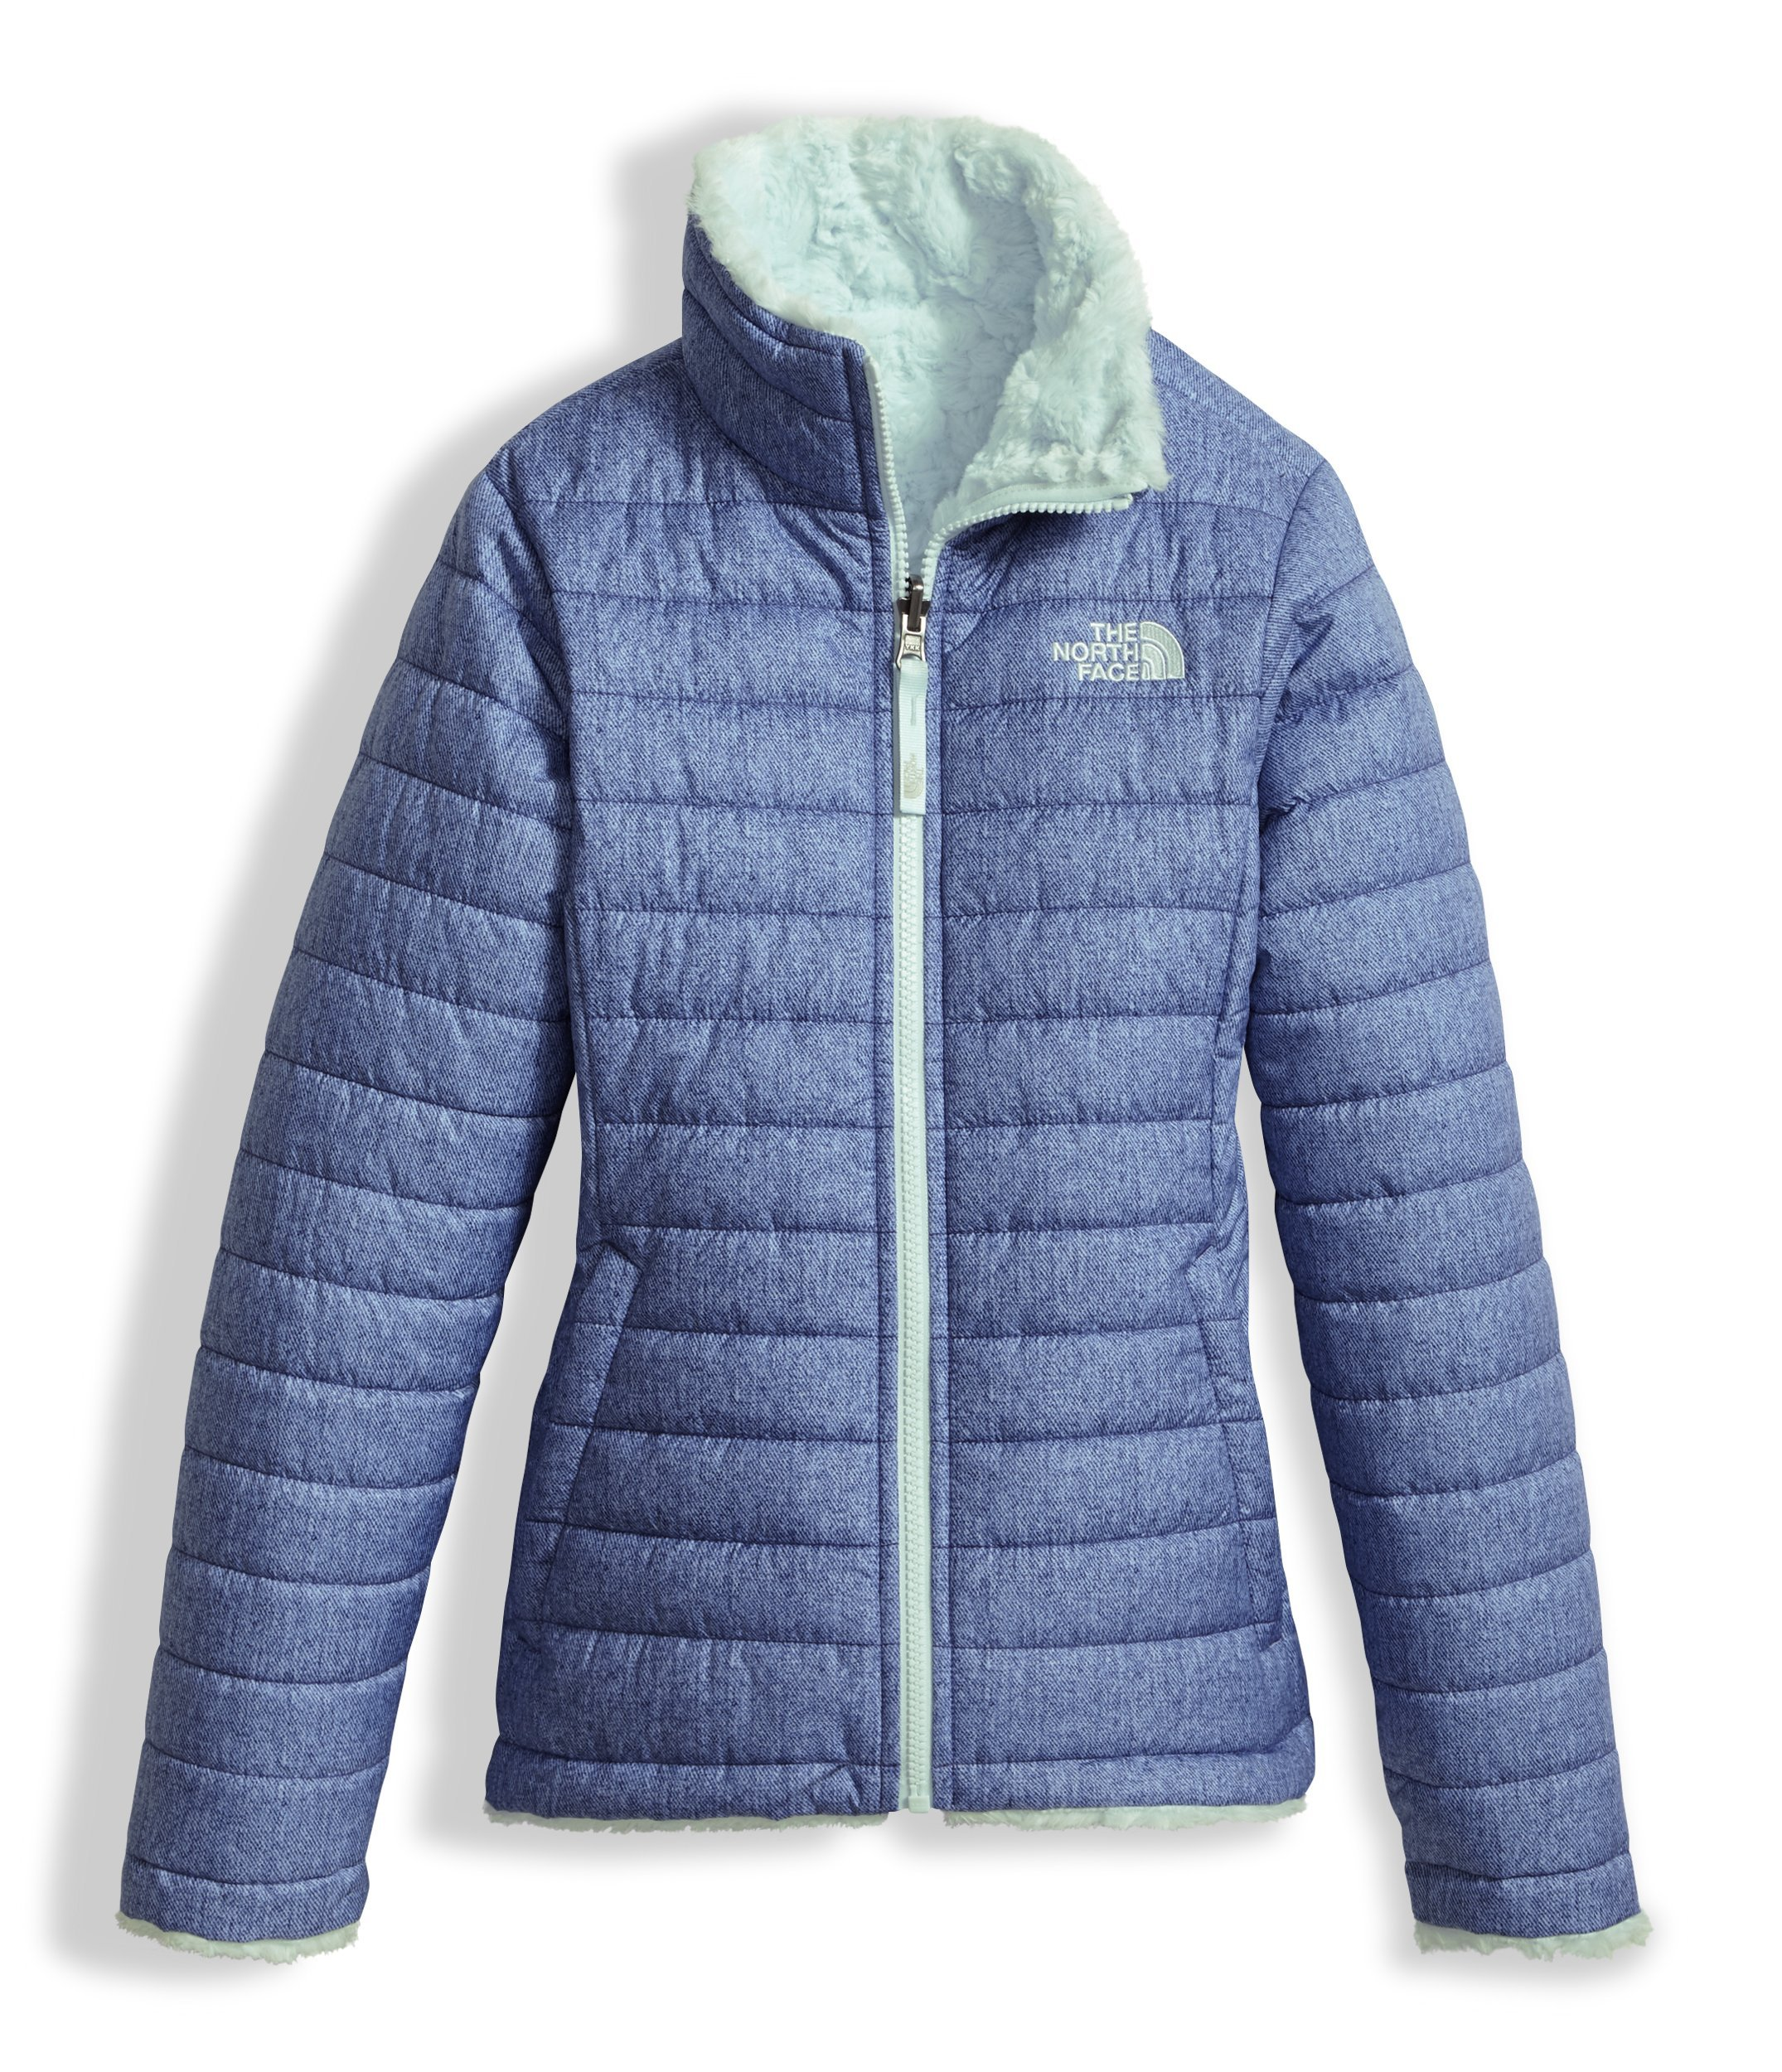 The North Face Girls Reversible Mossbud Swirl Jacket Bright Navy White Heather (Medium) by The North Face